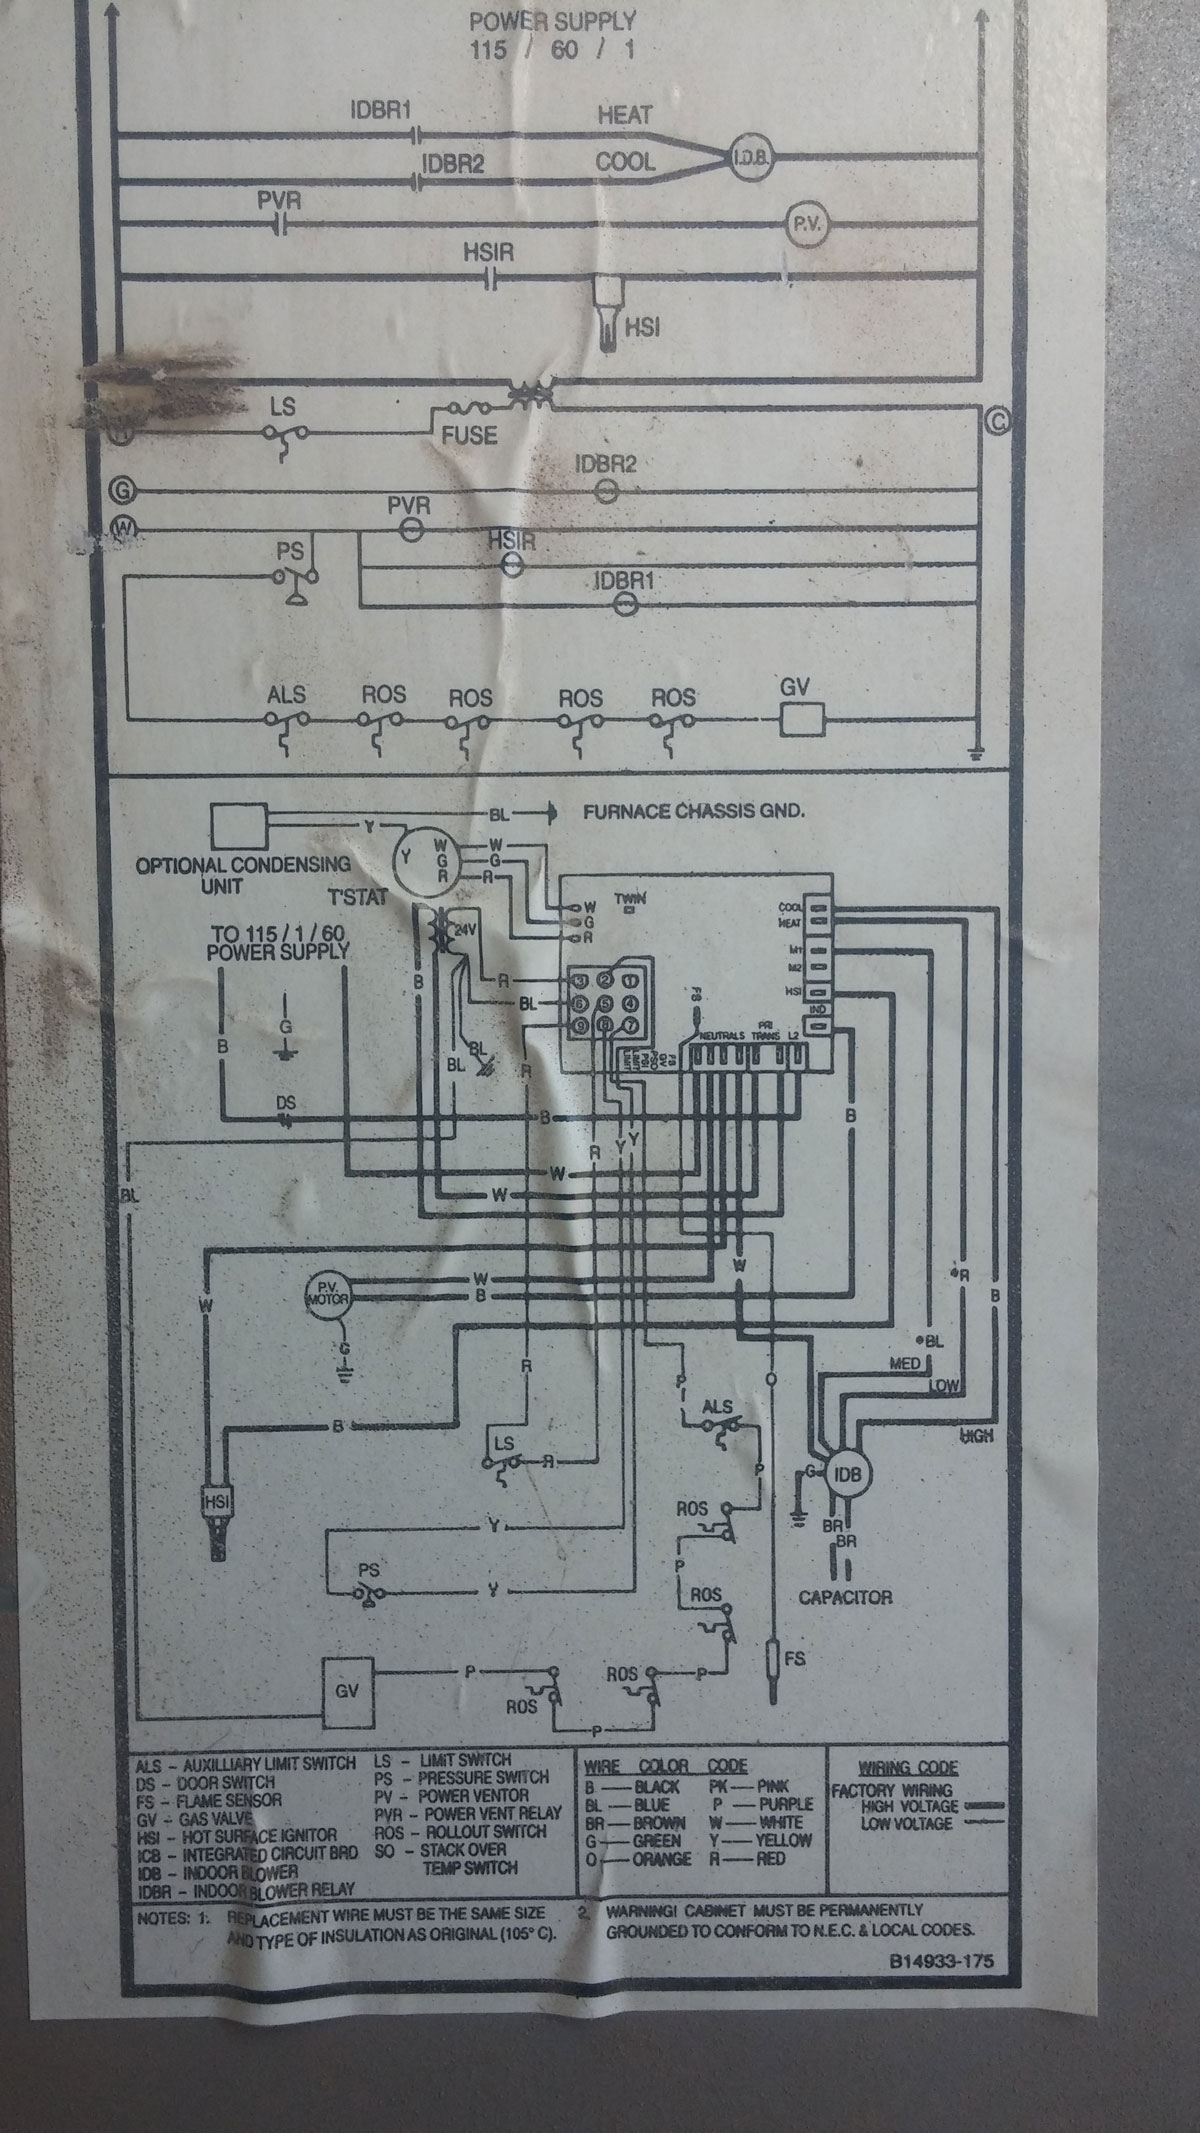 Empire Heater To Thermostat Wiring Diagram Wall